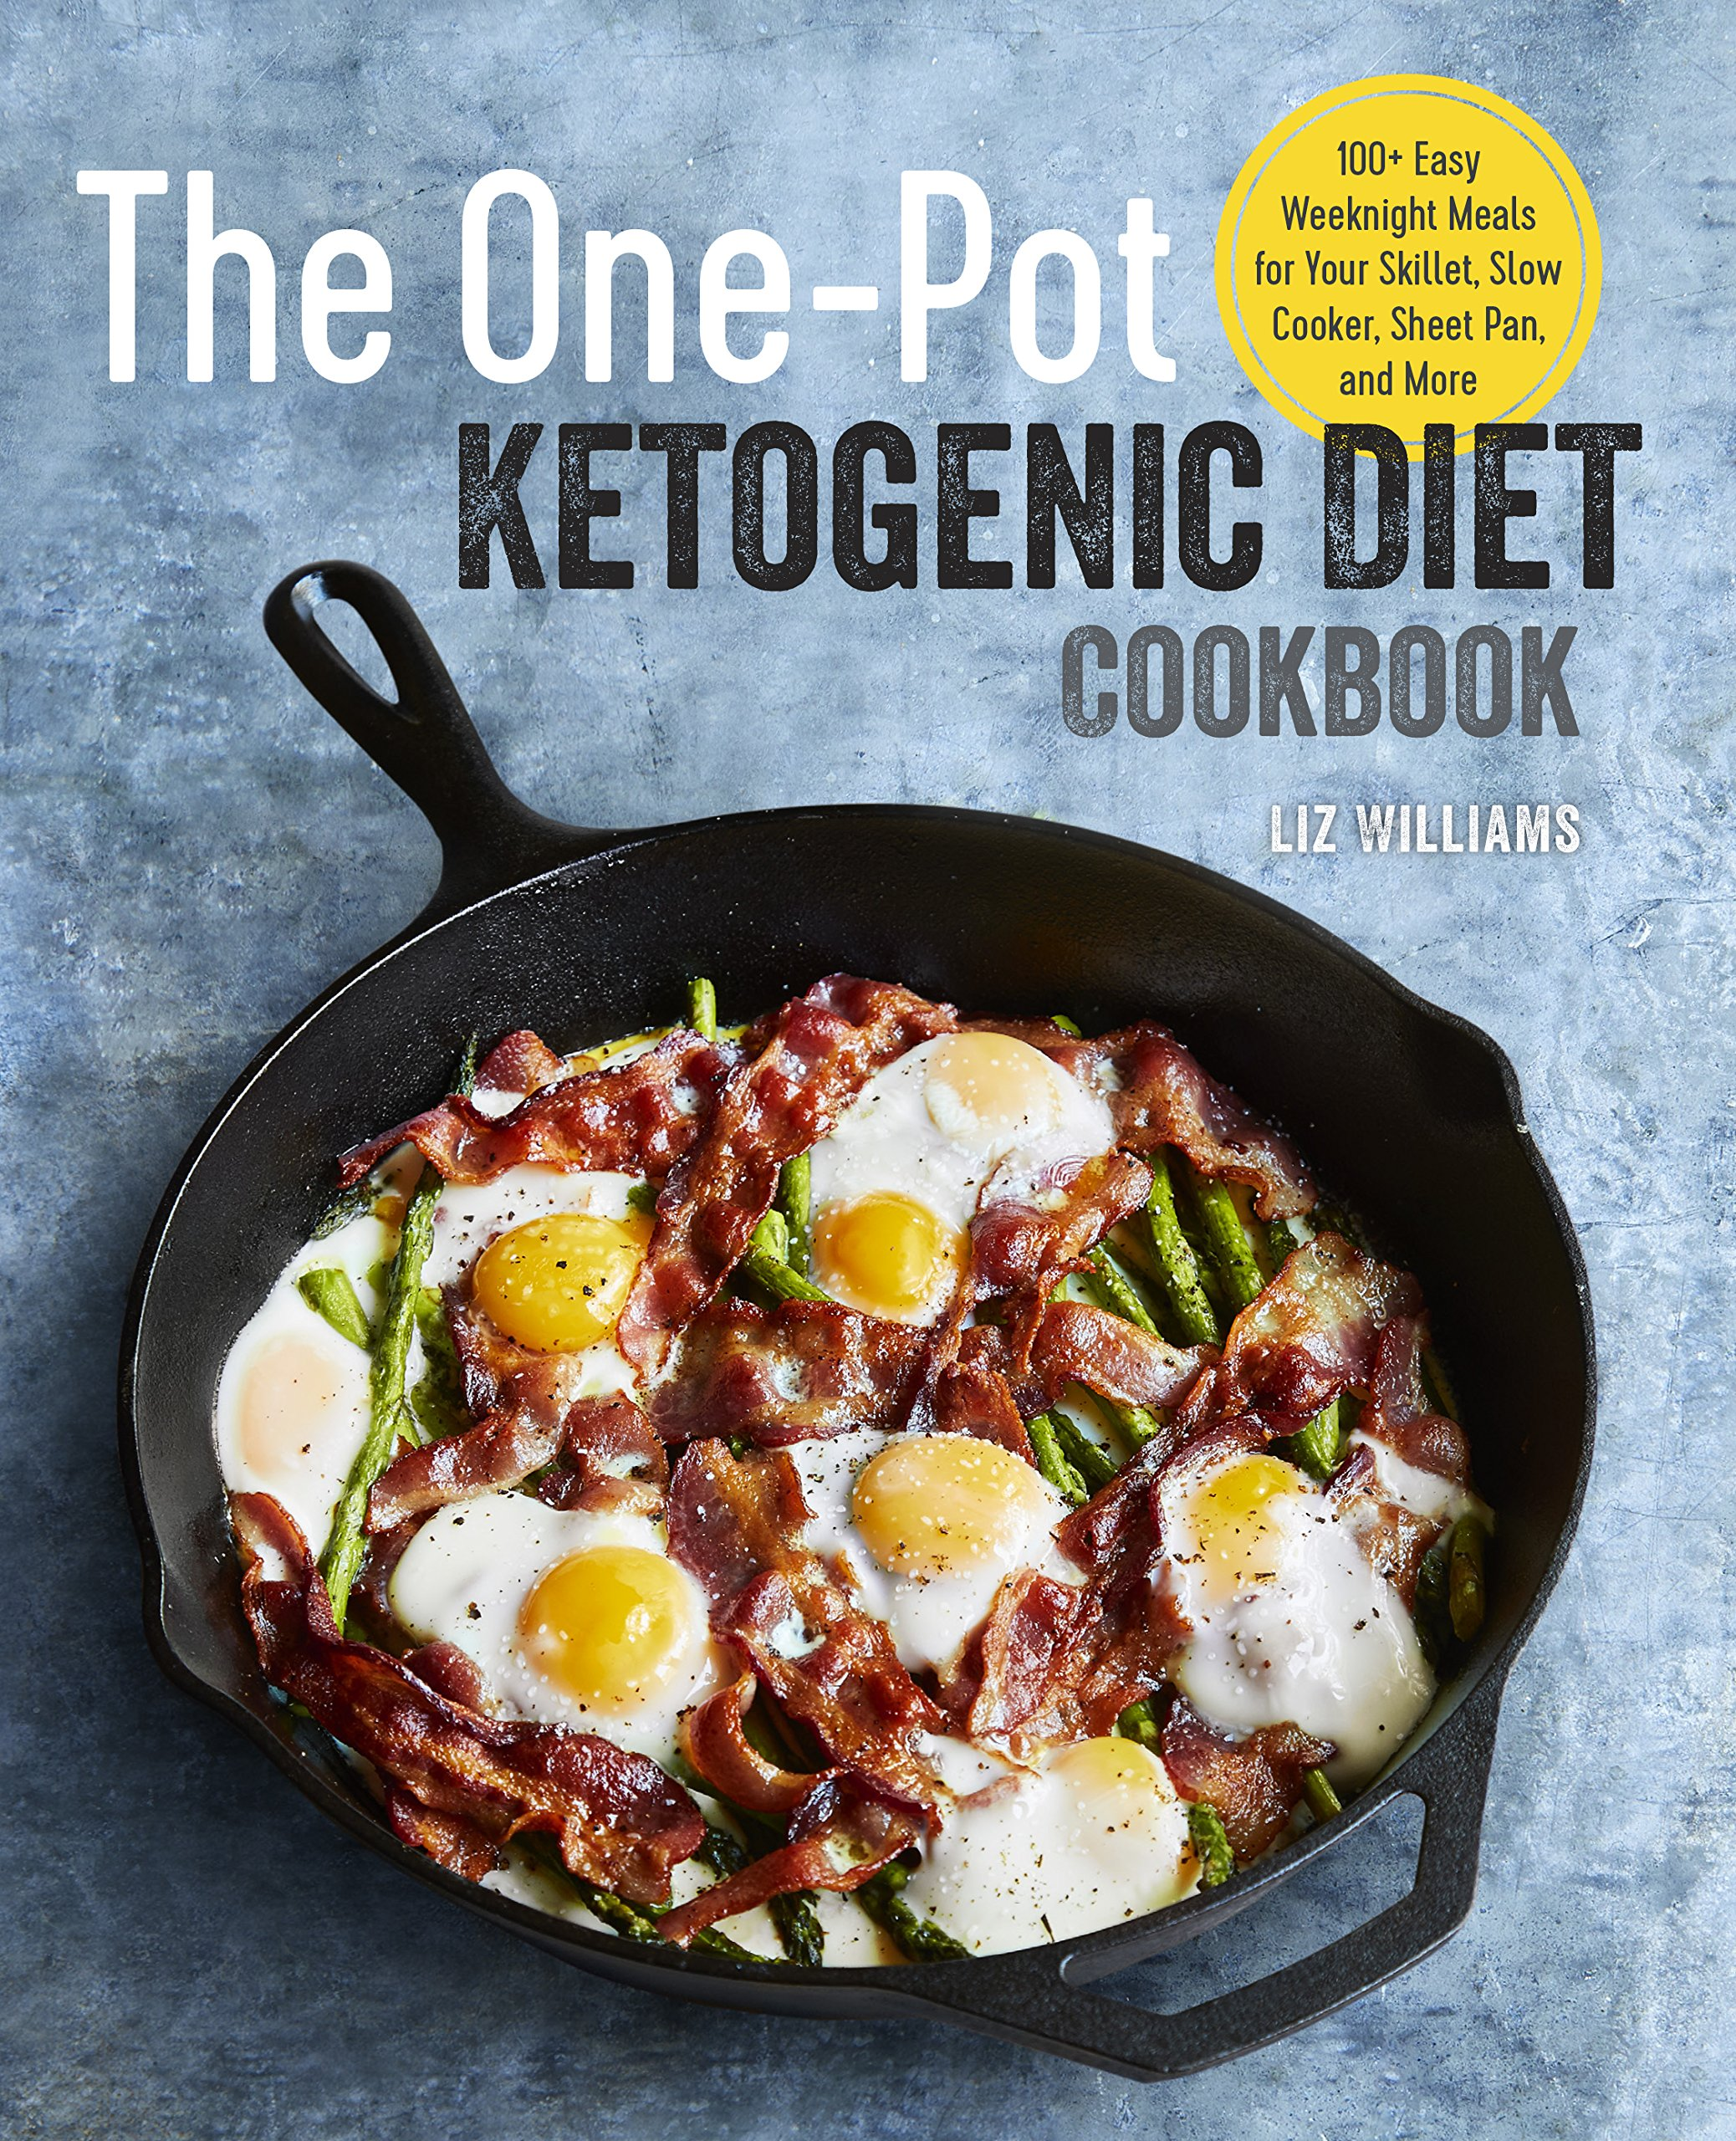 Simple Dinner Ideas One Pot Meals: The One Pot Ketogenic Diet Cookbook: 100+ Easy Weeknight